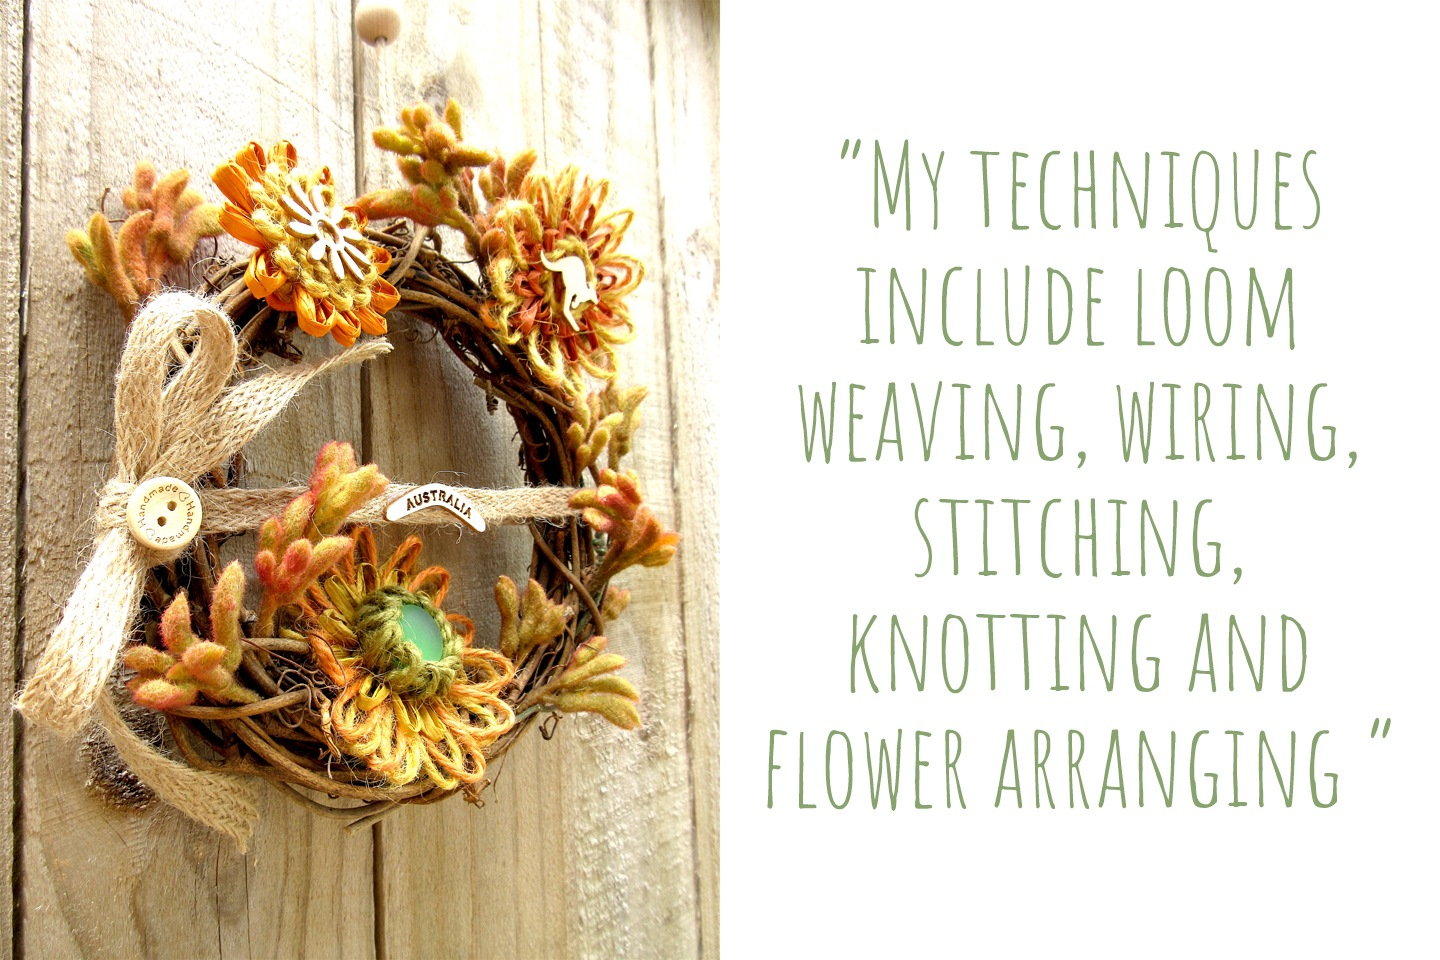 Australian grapevine wreath of handmade flowers by M Decor Botanica; 'My techniques include loom weaving, wiring, stitching, knotting and flower arranging'